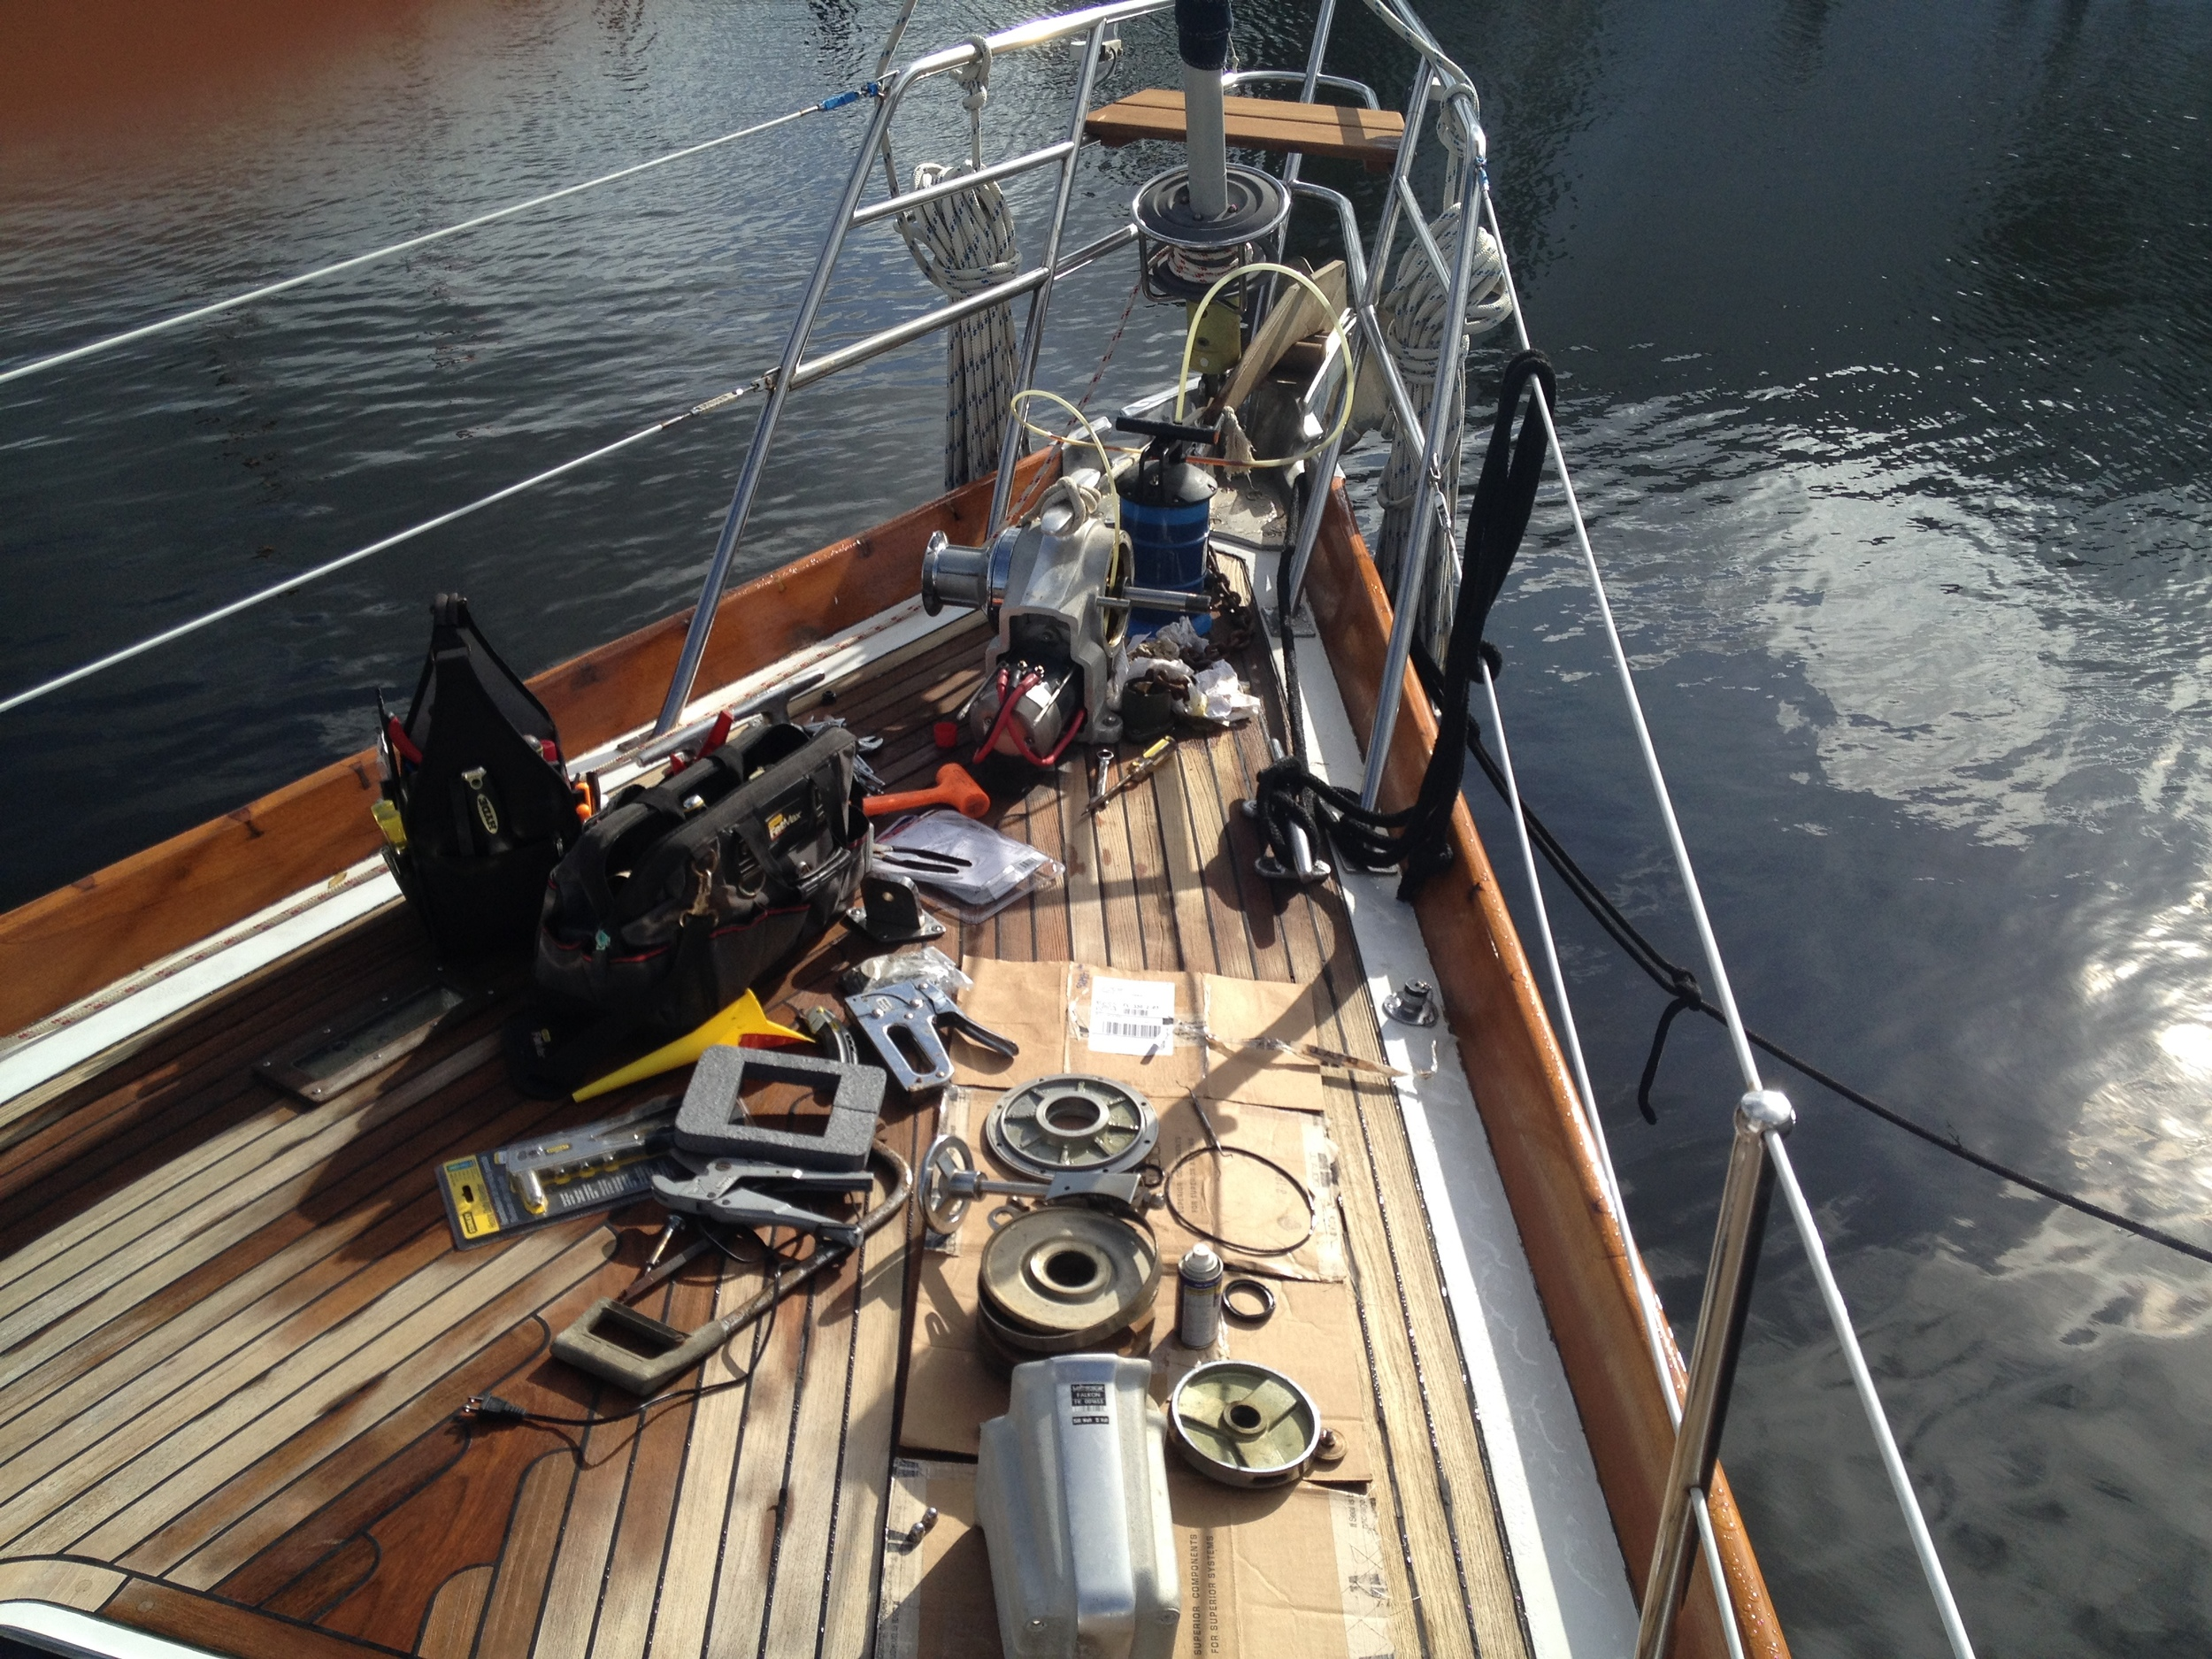 Rebuilding the anchor winch